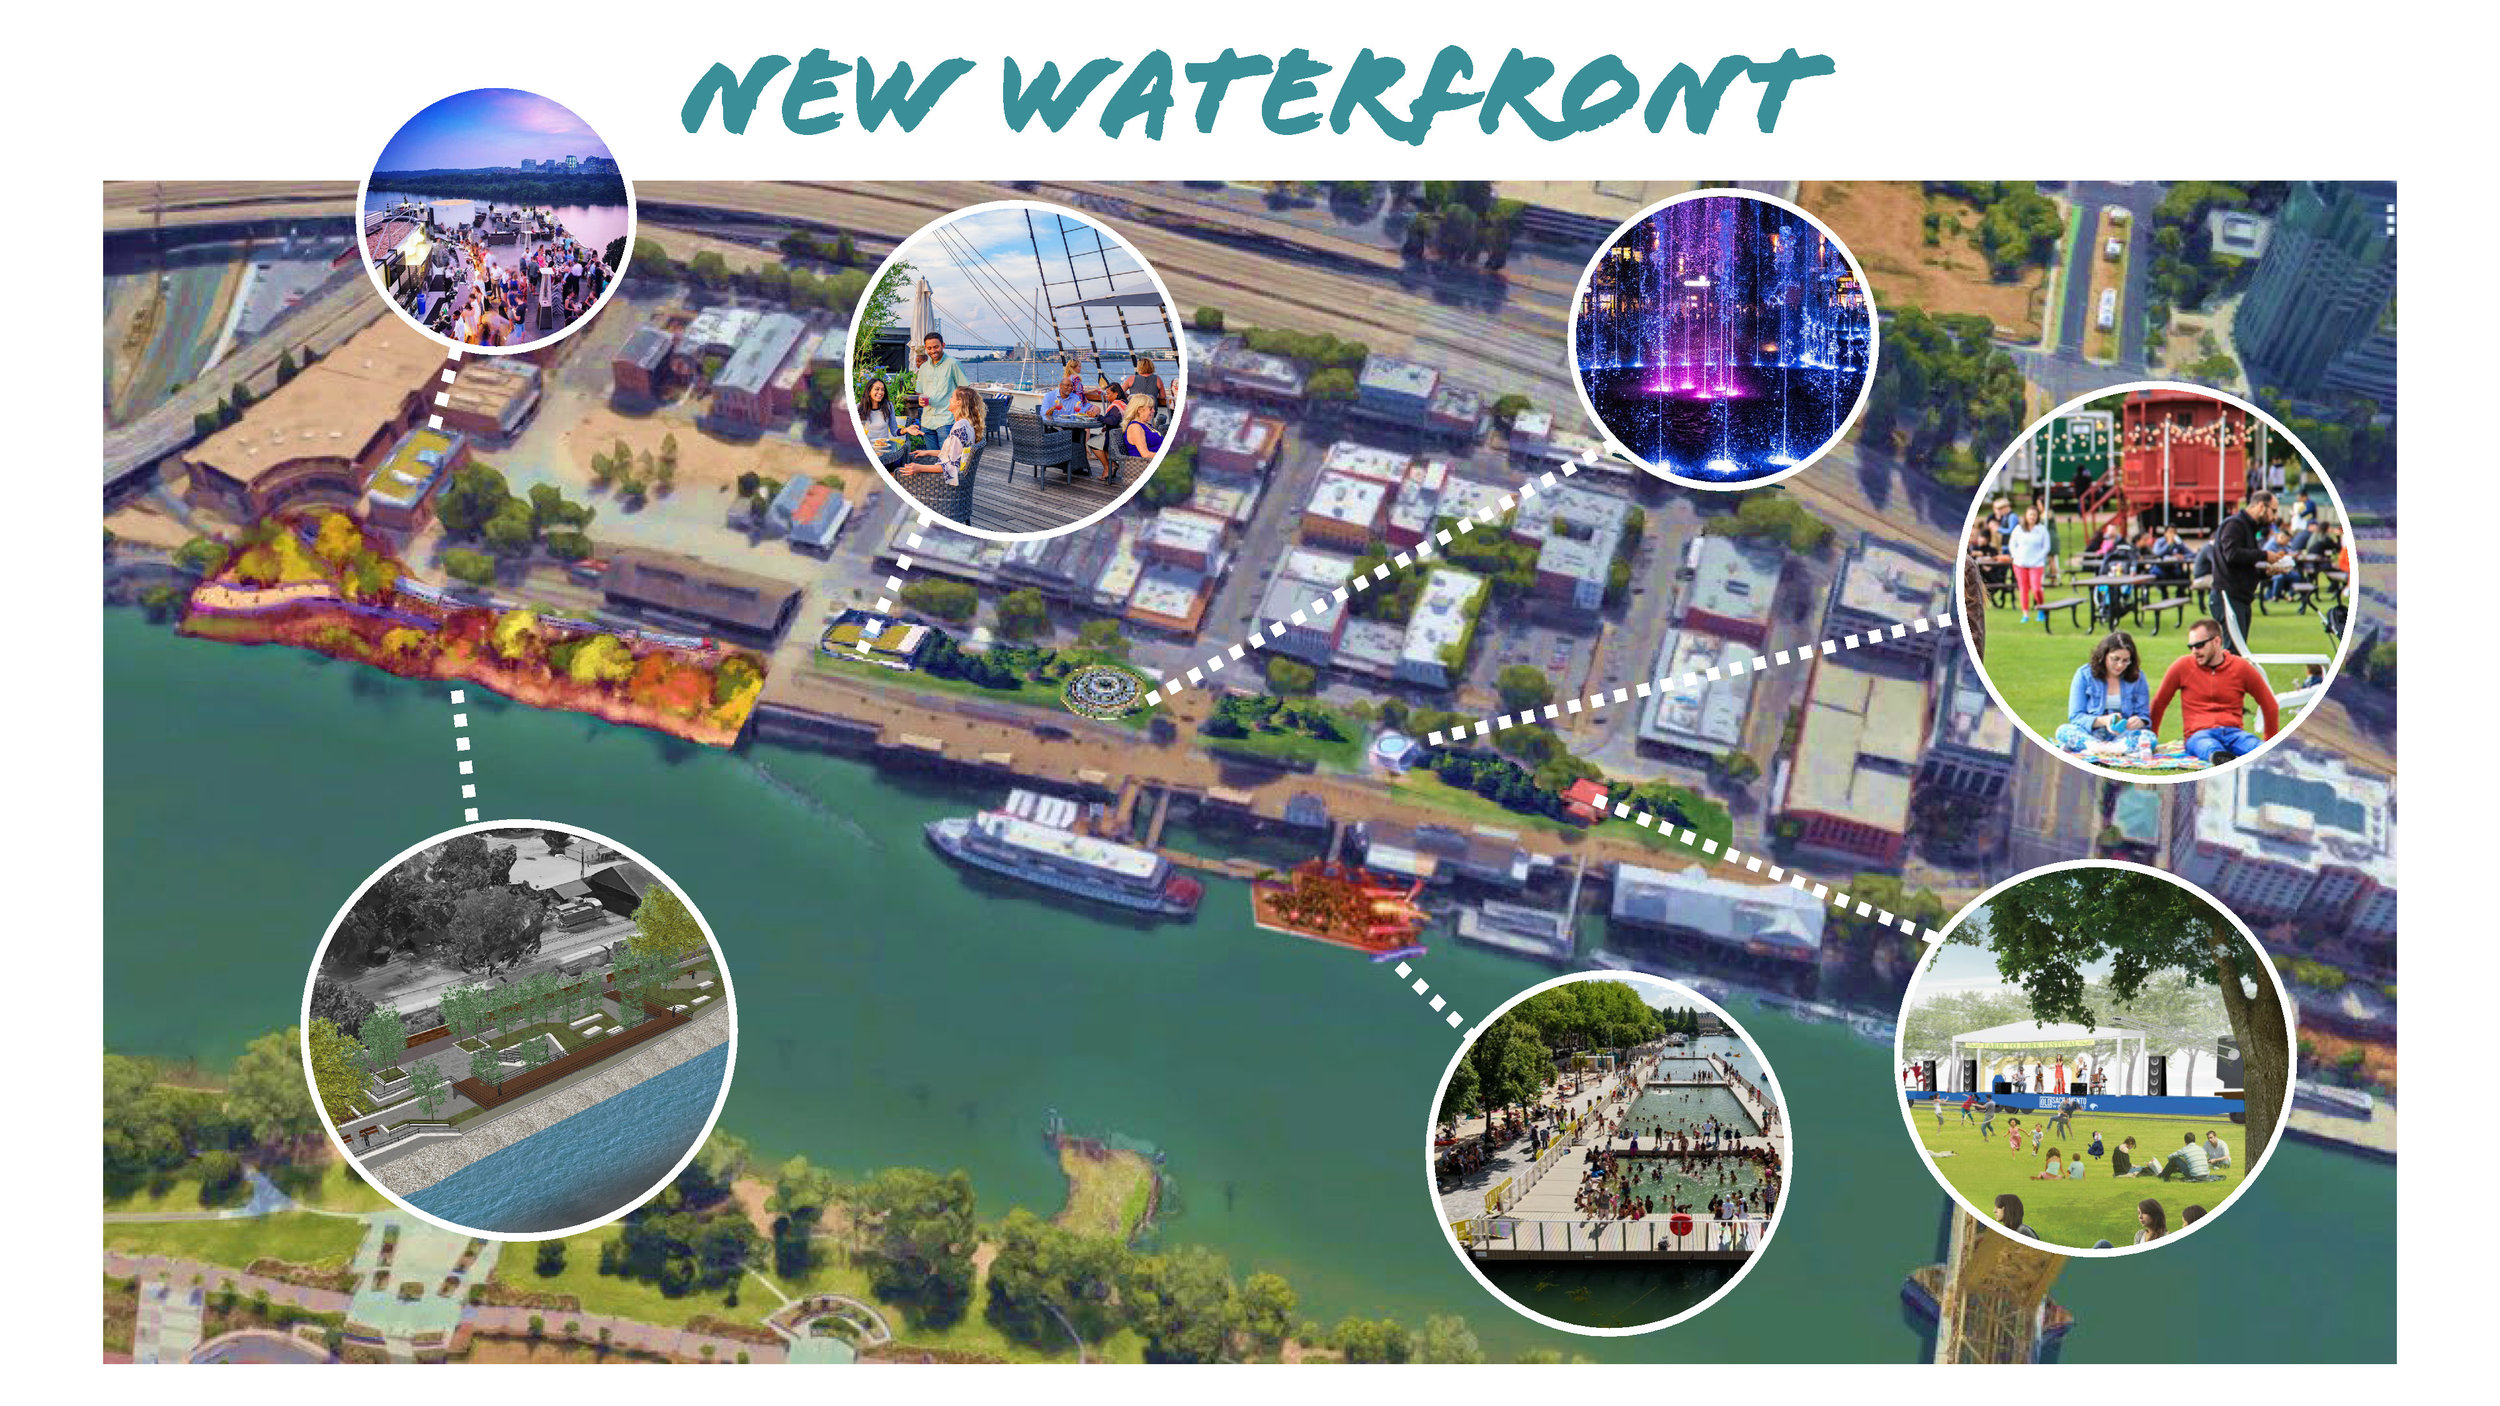 This slide shows where new attractions would go and what they could look like.